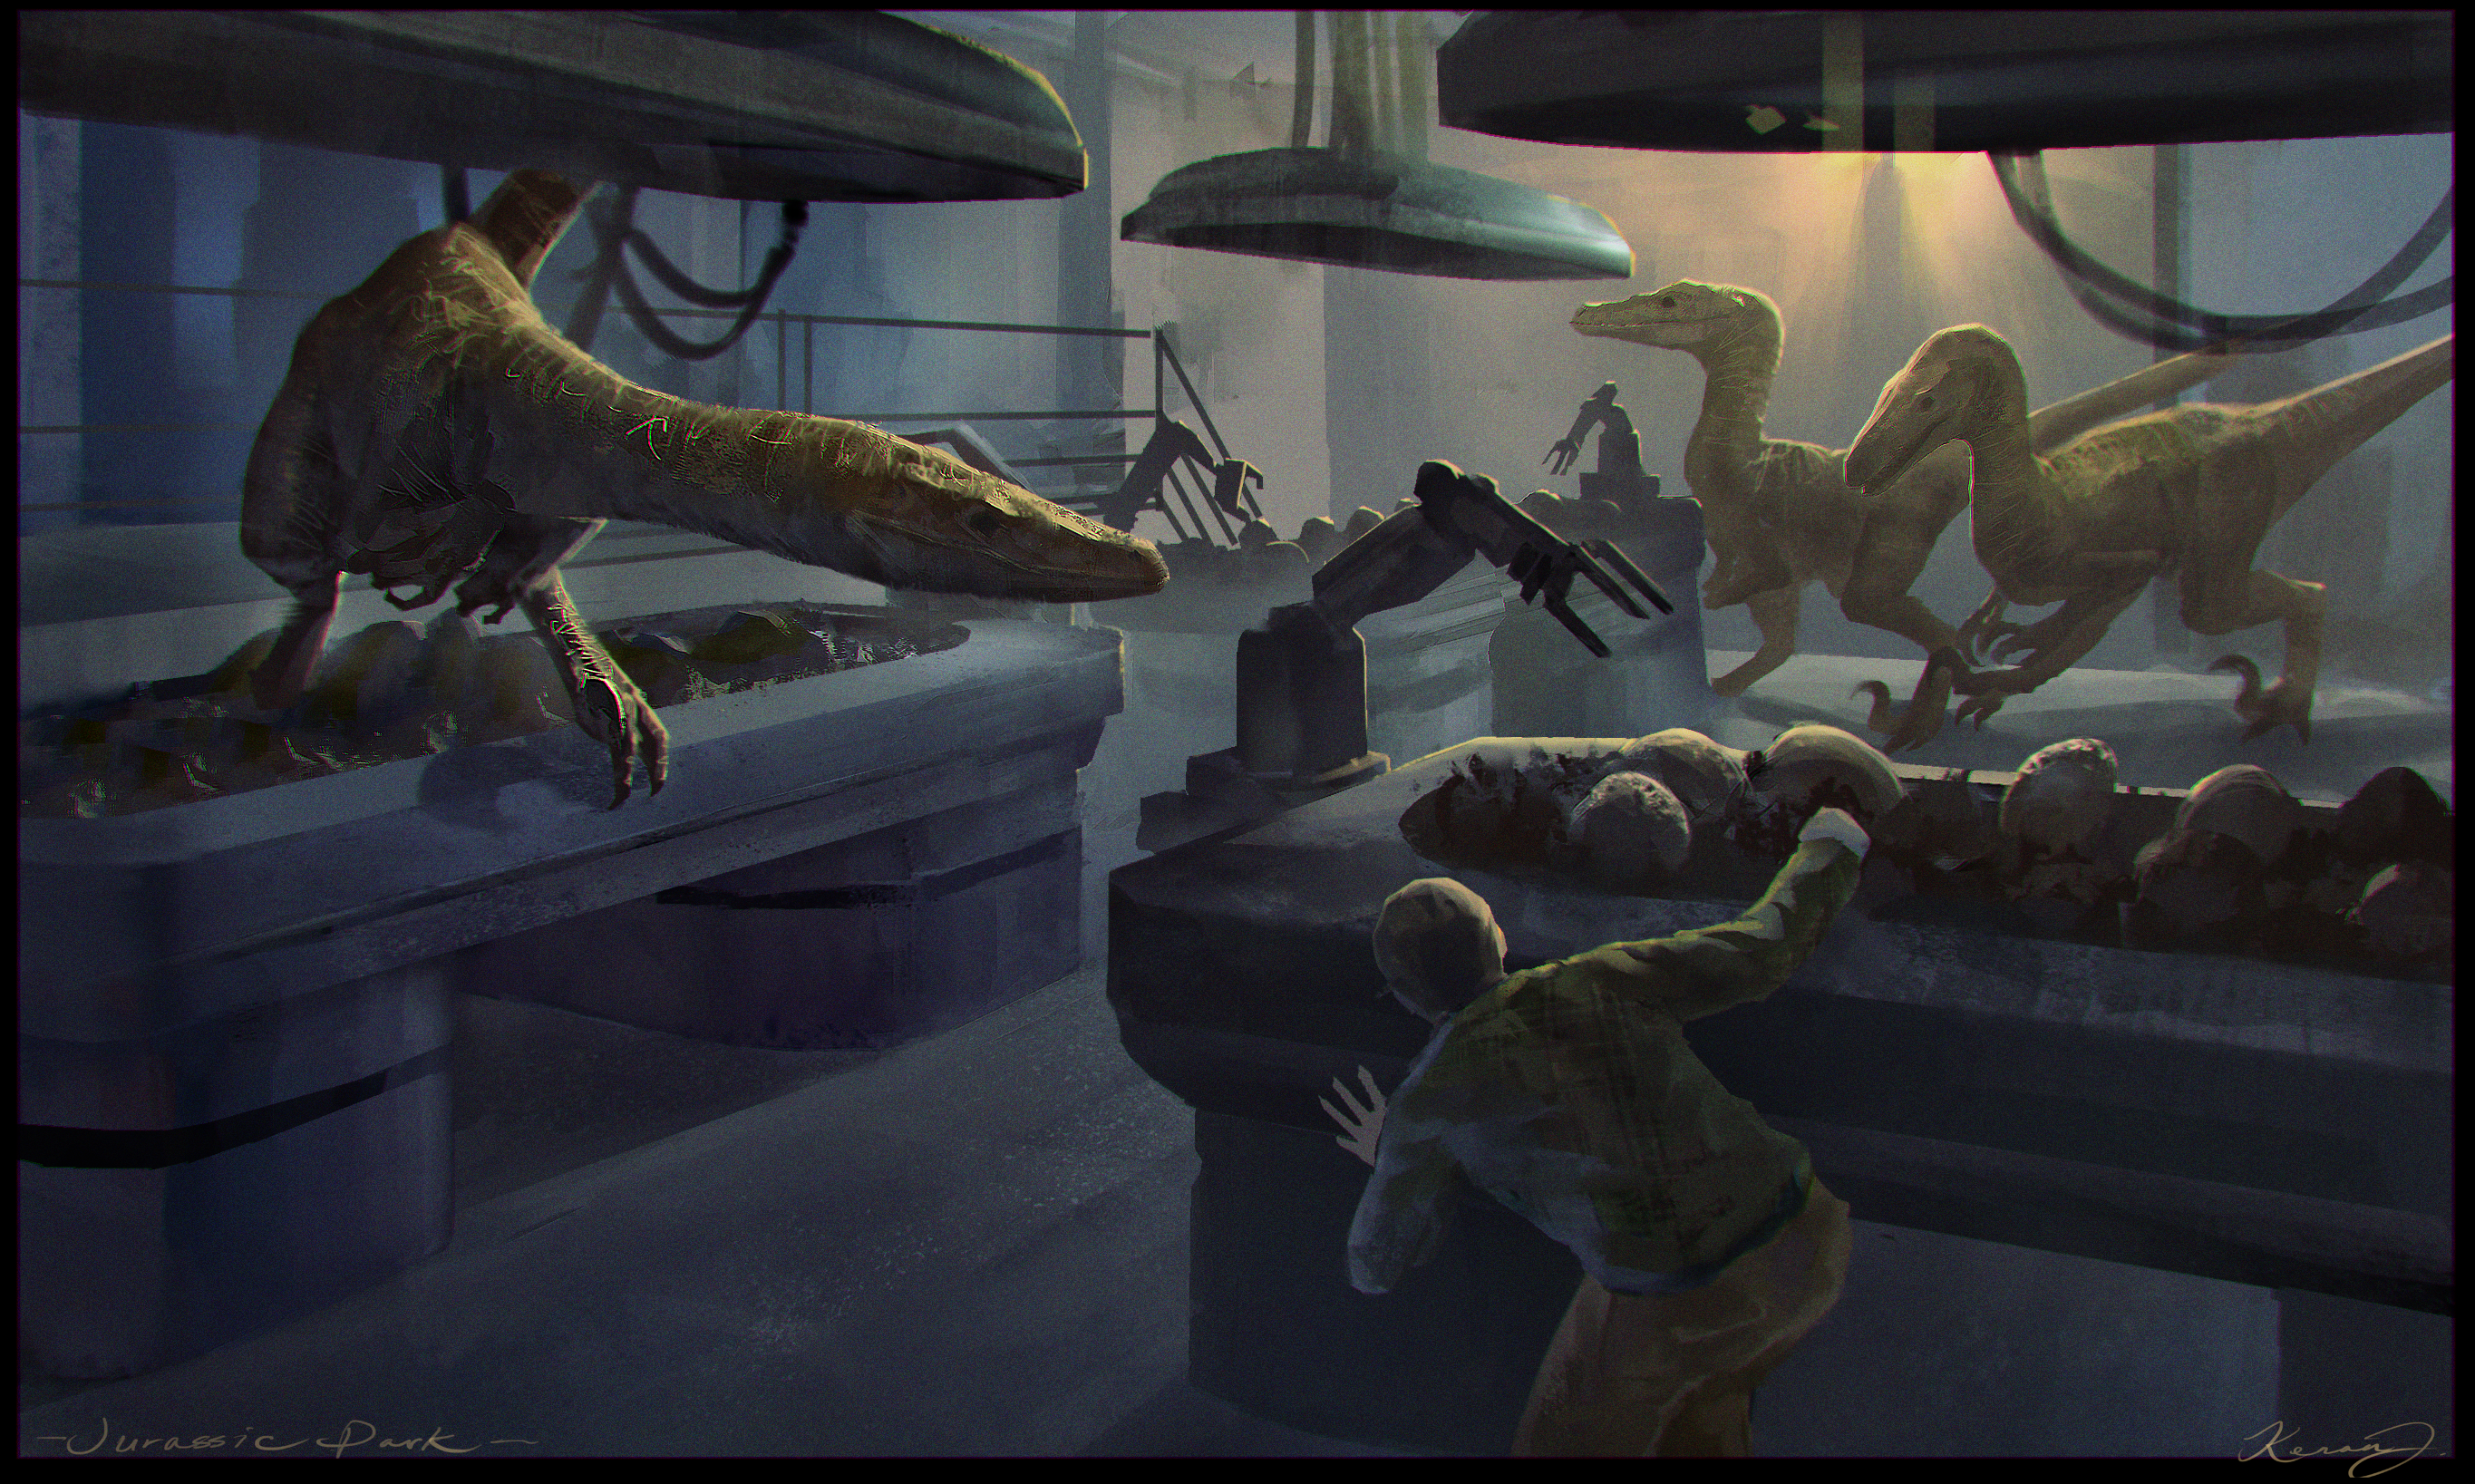 jurassic_park_by_kenanj-d8anl33.png